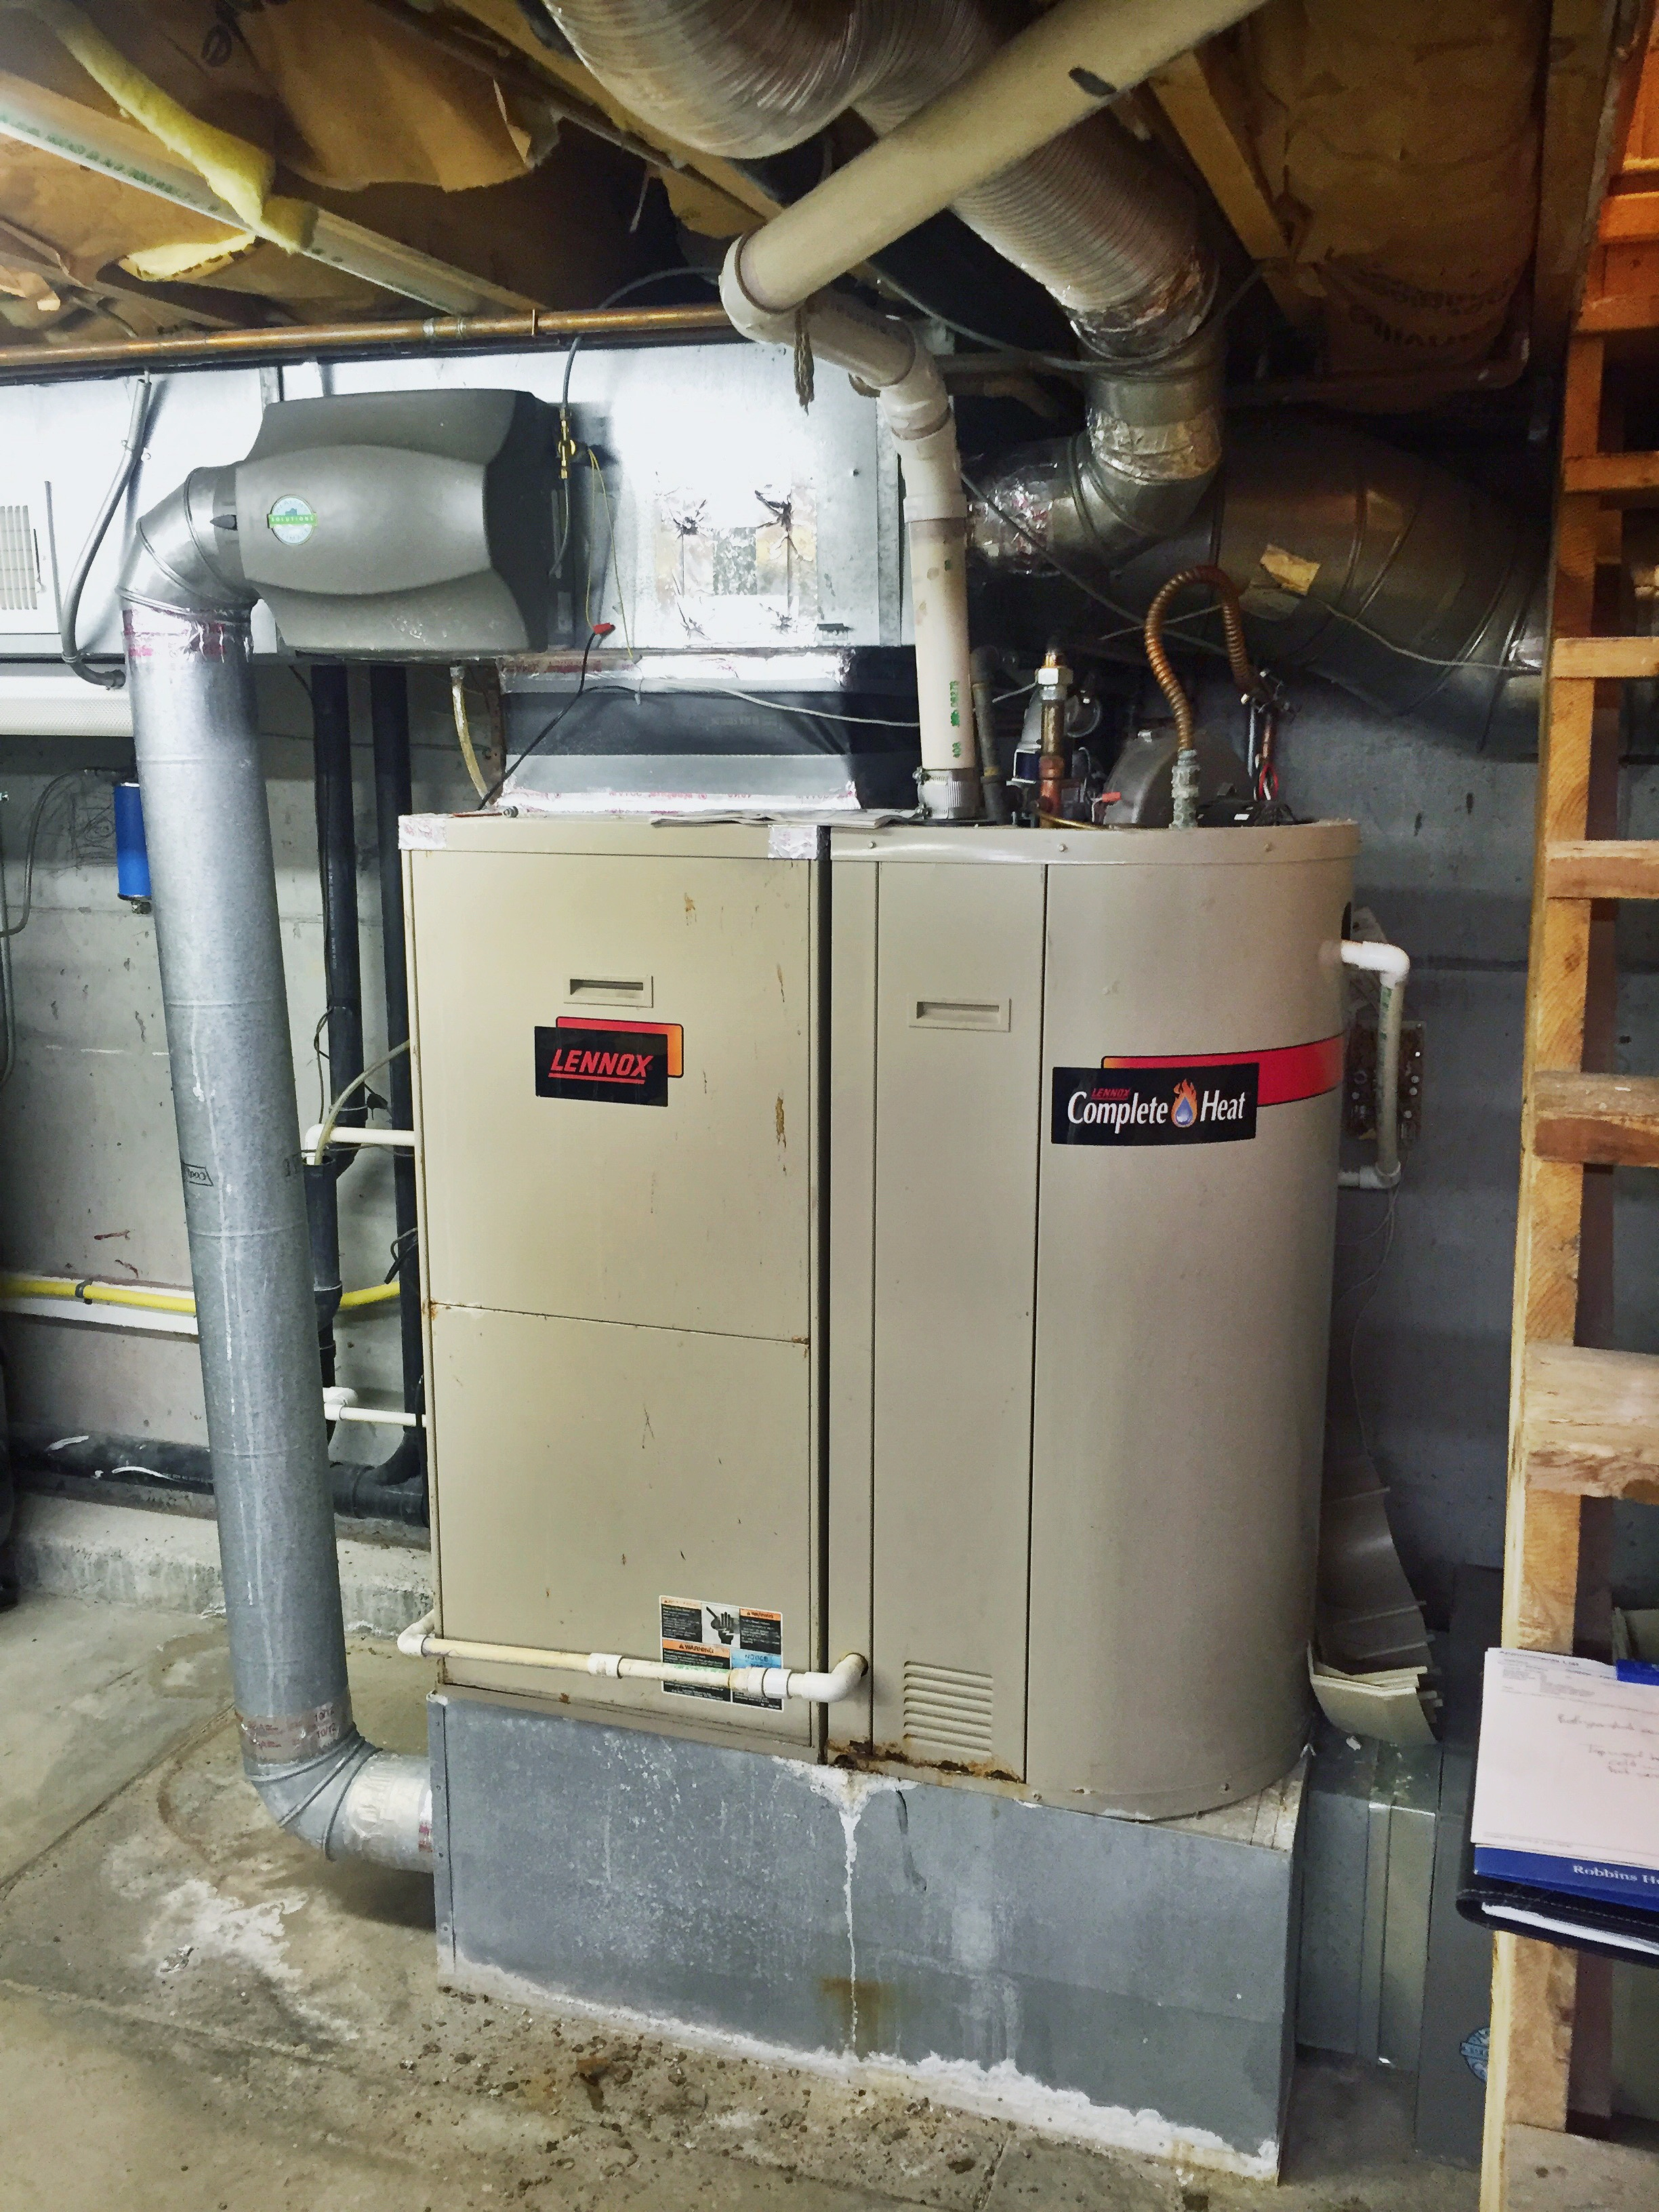 Coleman 95% Efficient Furnace with 16 SEER AC system